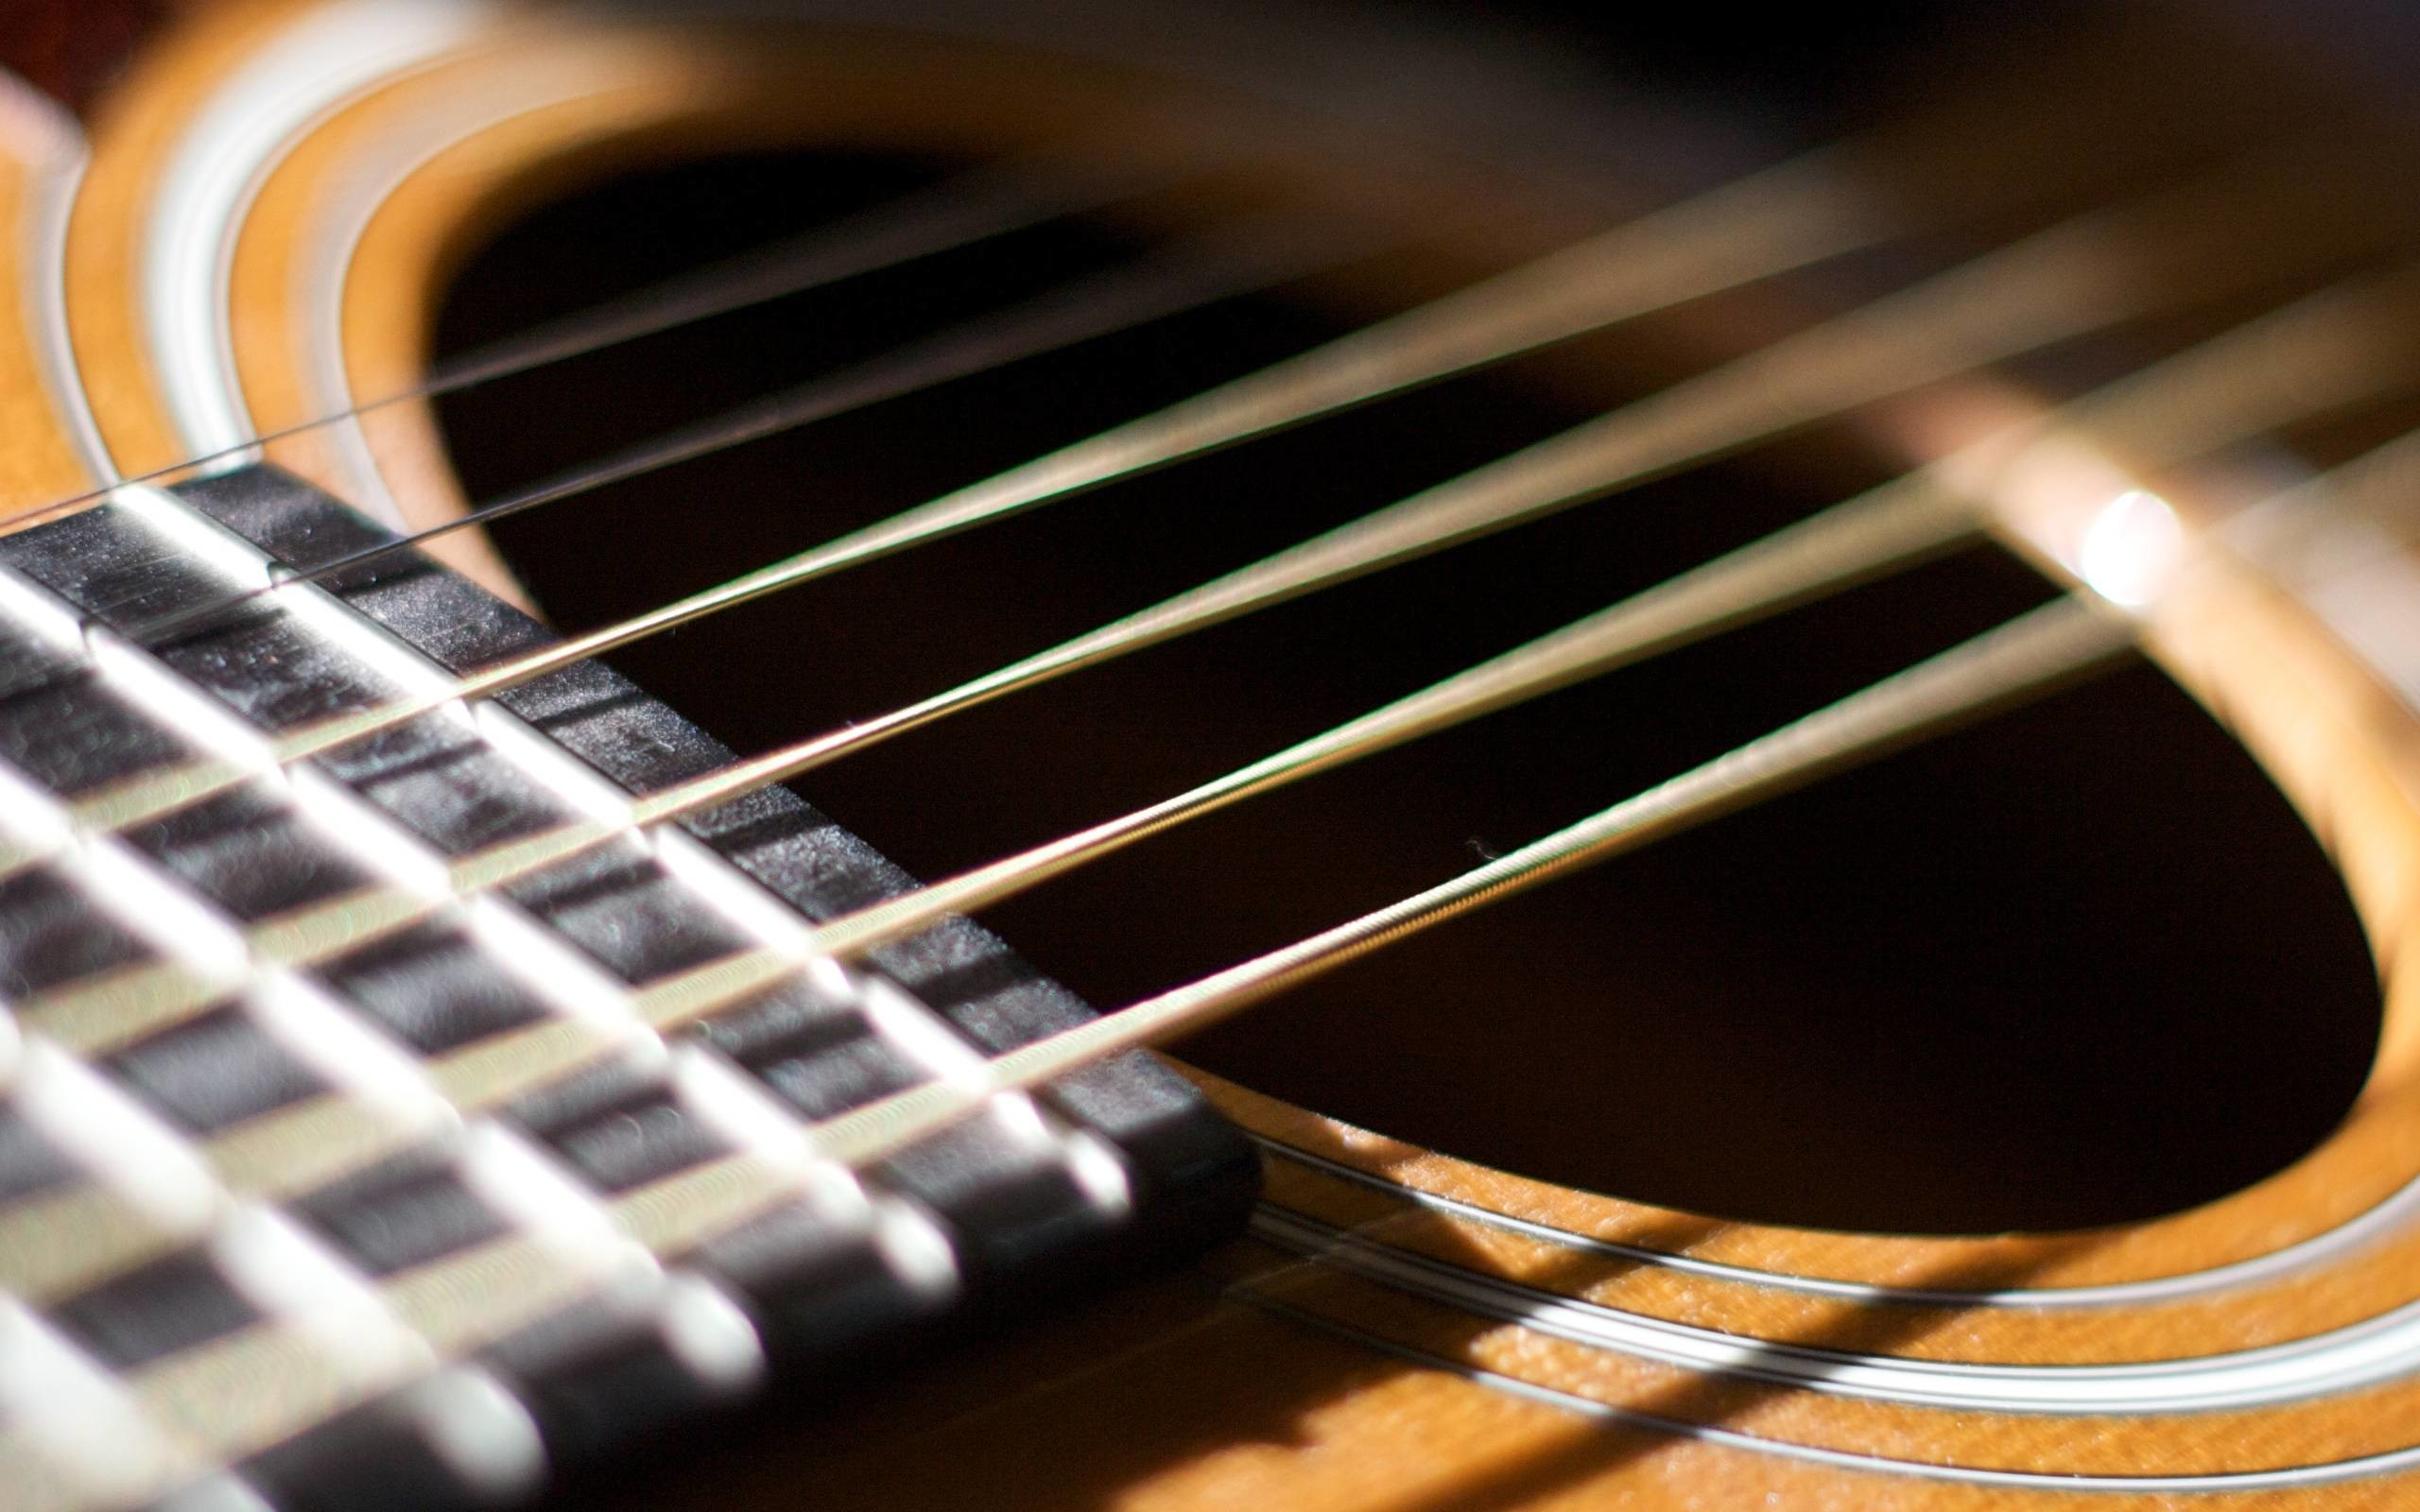 Acoustic Guitar Wallpapers – Full HD wallpaper search